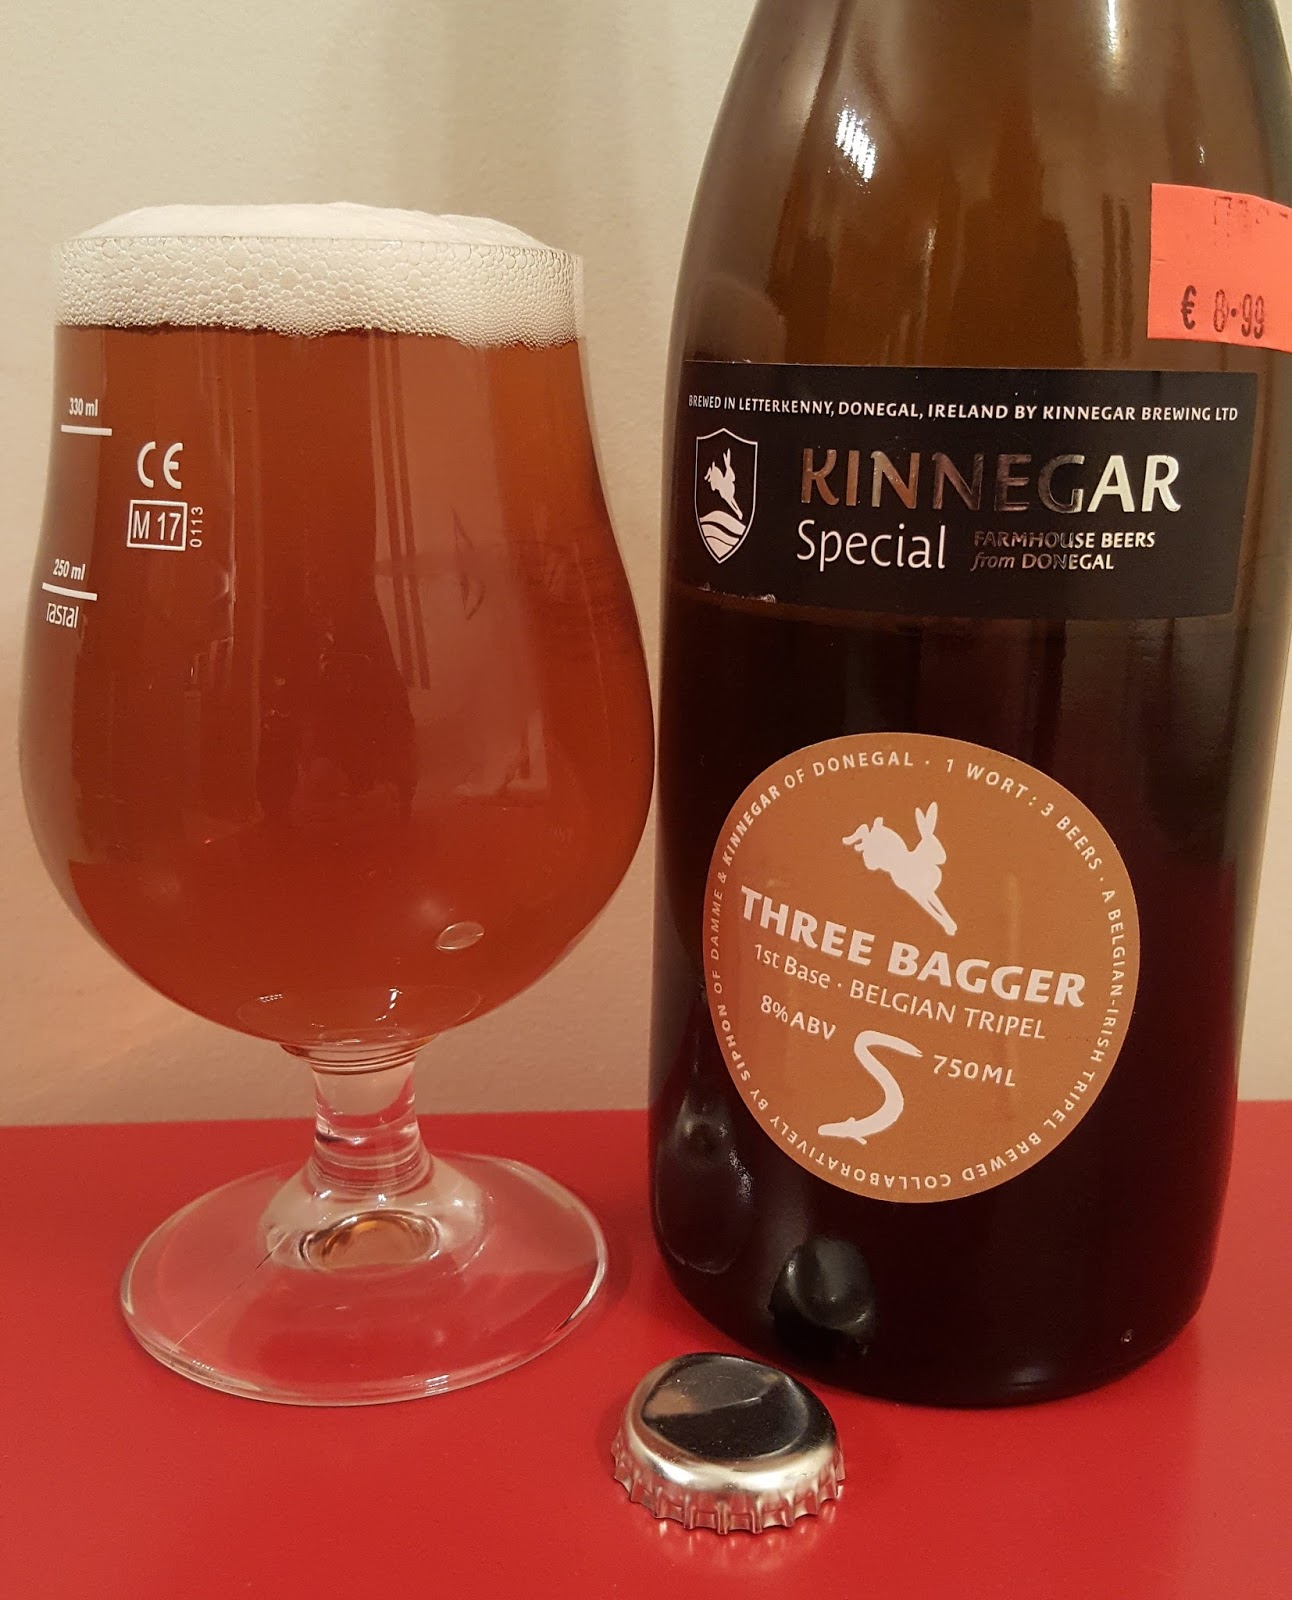 The Beer Nut All That I Did Leave Behind Citra Hand Body Lotion Youthful White 250 Ml Kinnegars Other Release In Late 2017 Was First A Trilogy Three Bagger 1st Base Is Saison Brewed Collaboration With Belgiums Siphon Brewing